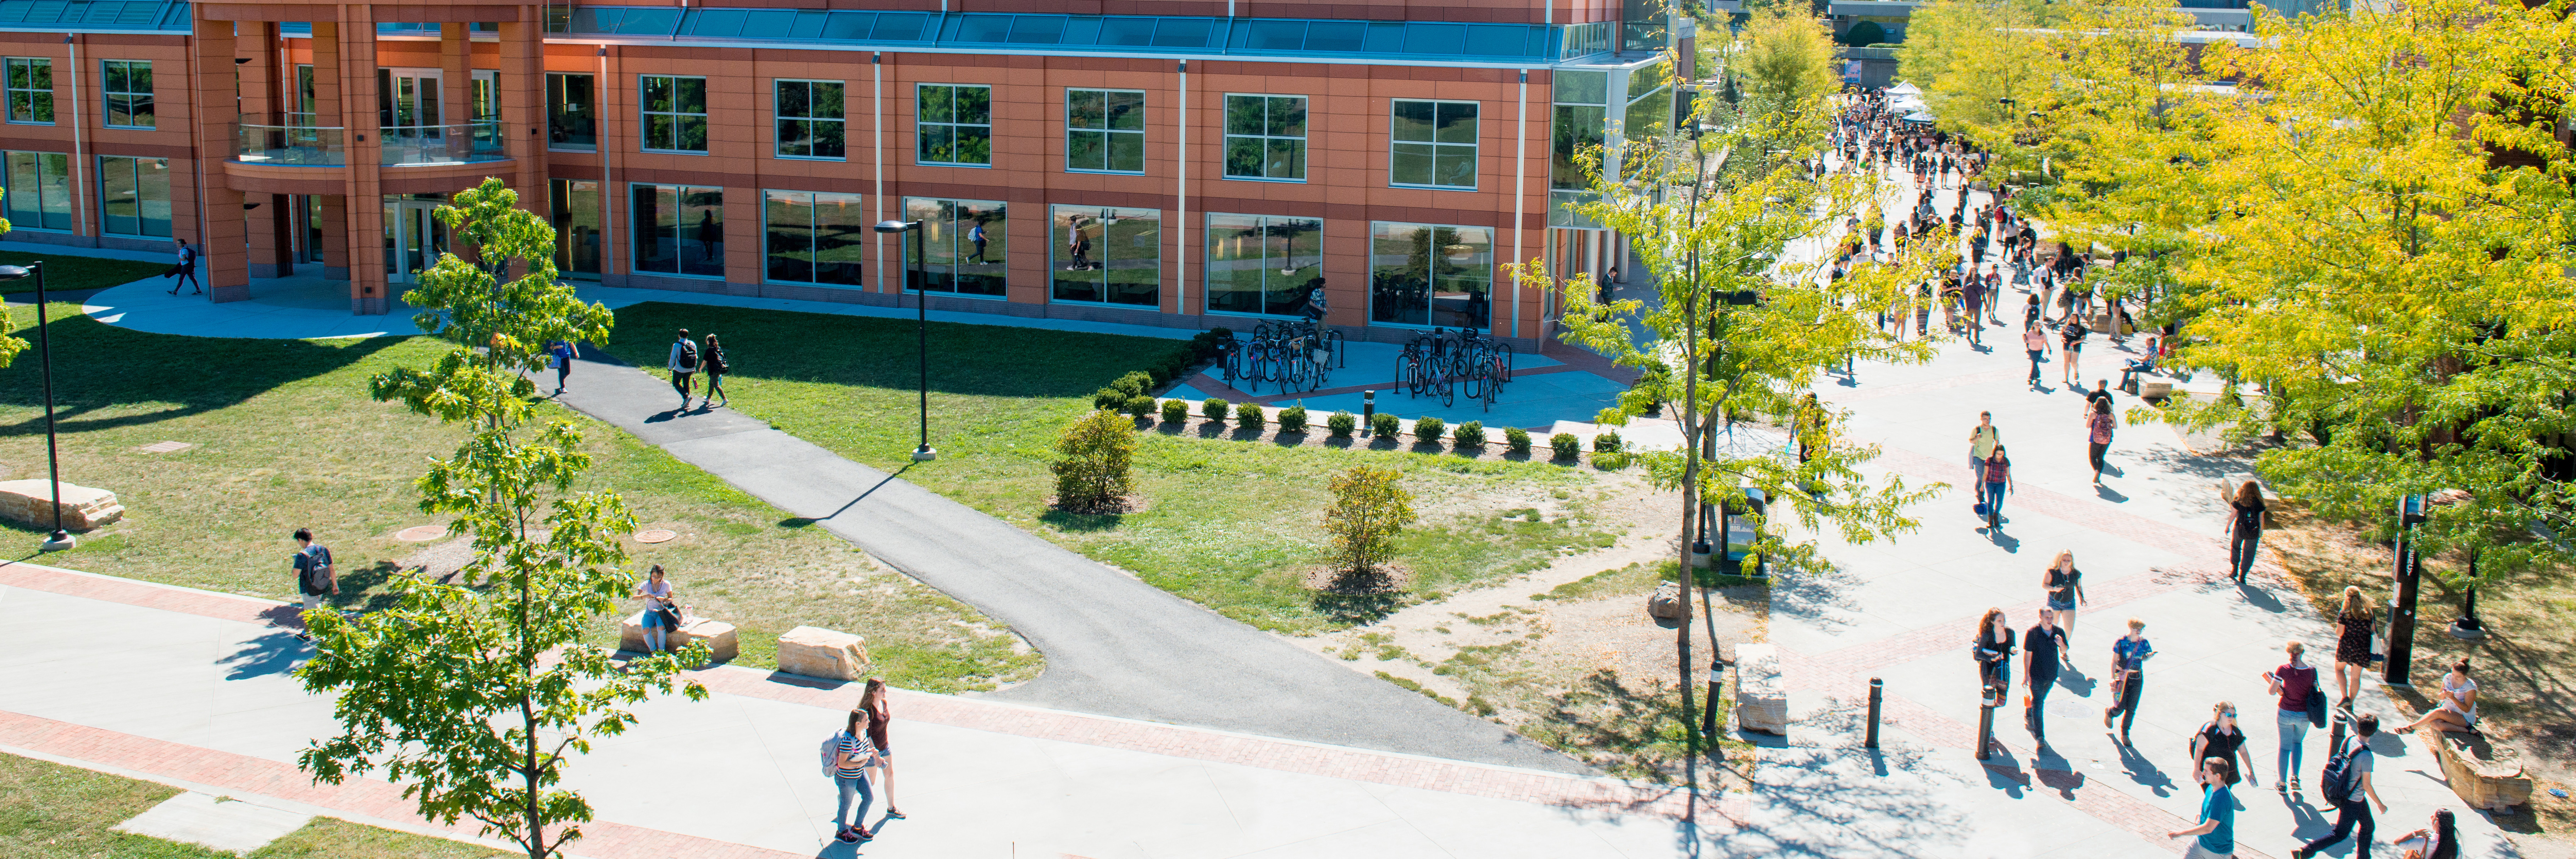 SUNY New Paltz | Schedule of Classes | Schedule of Classes